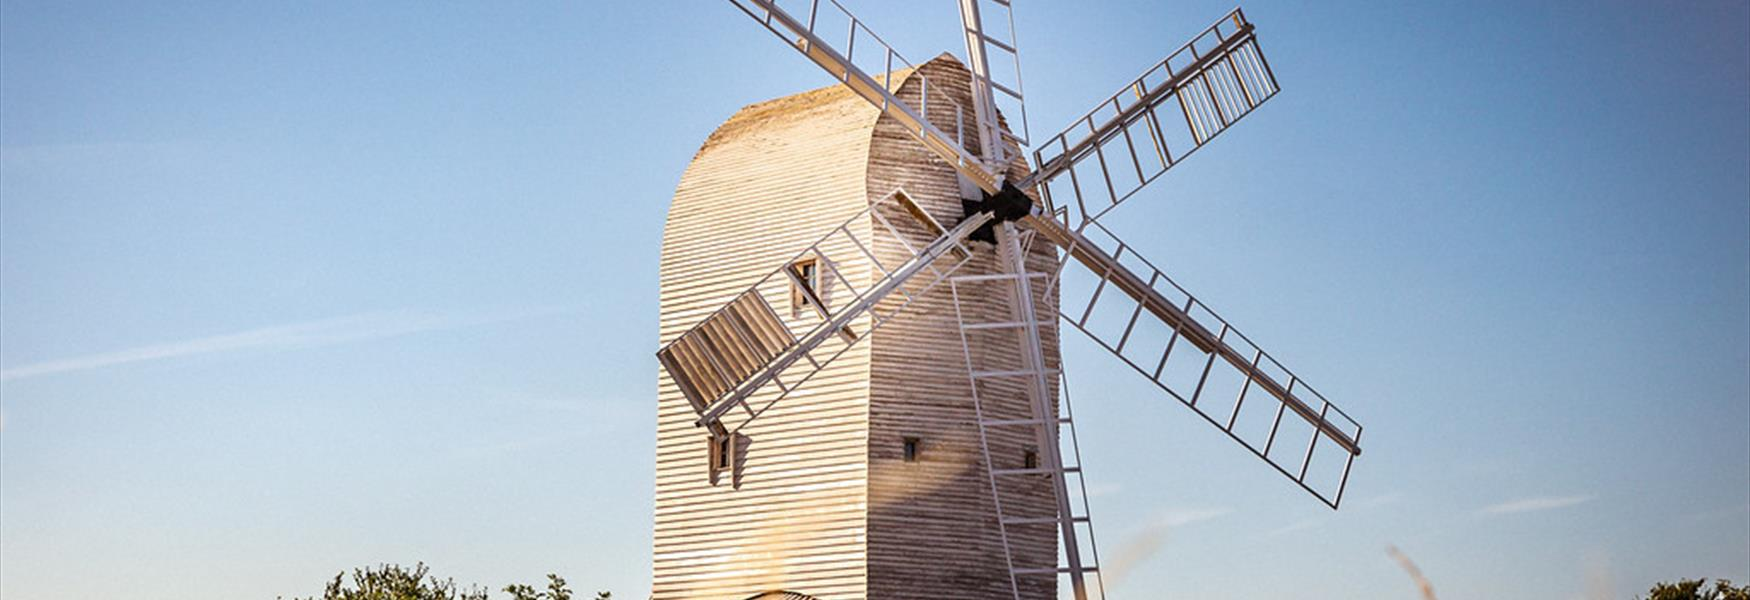 Ashcombe Windmill, Kingston - Nigel French